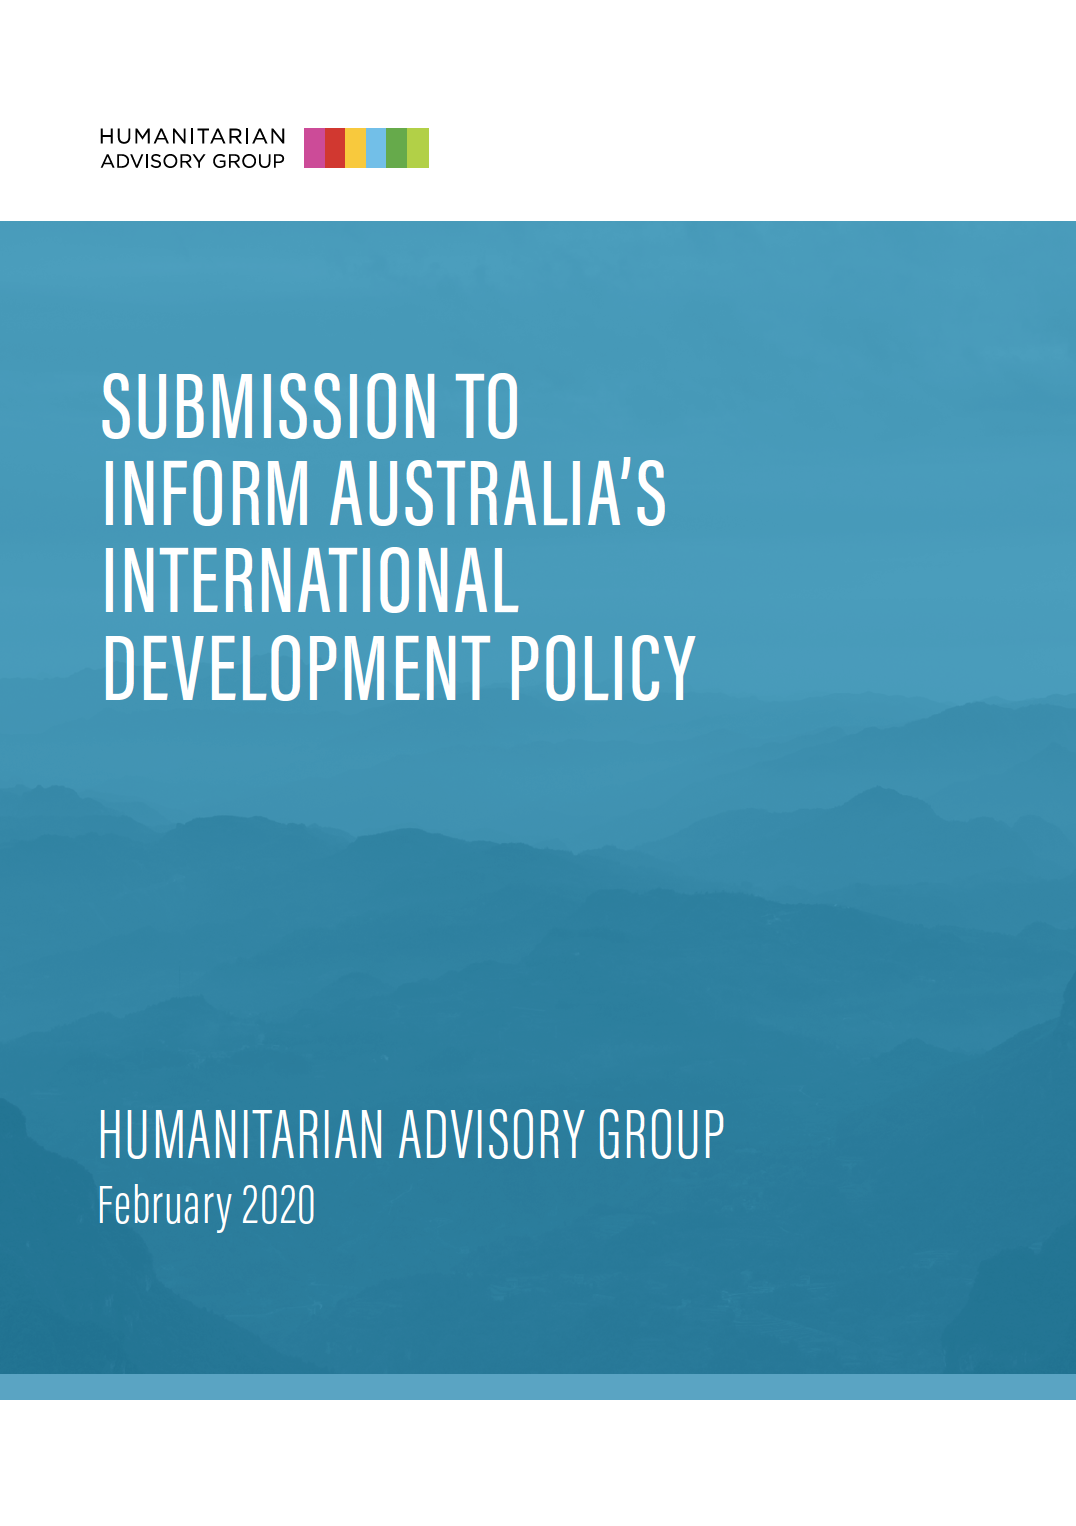 Submissions to inform Australia's international development policy